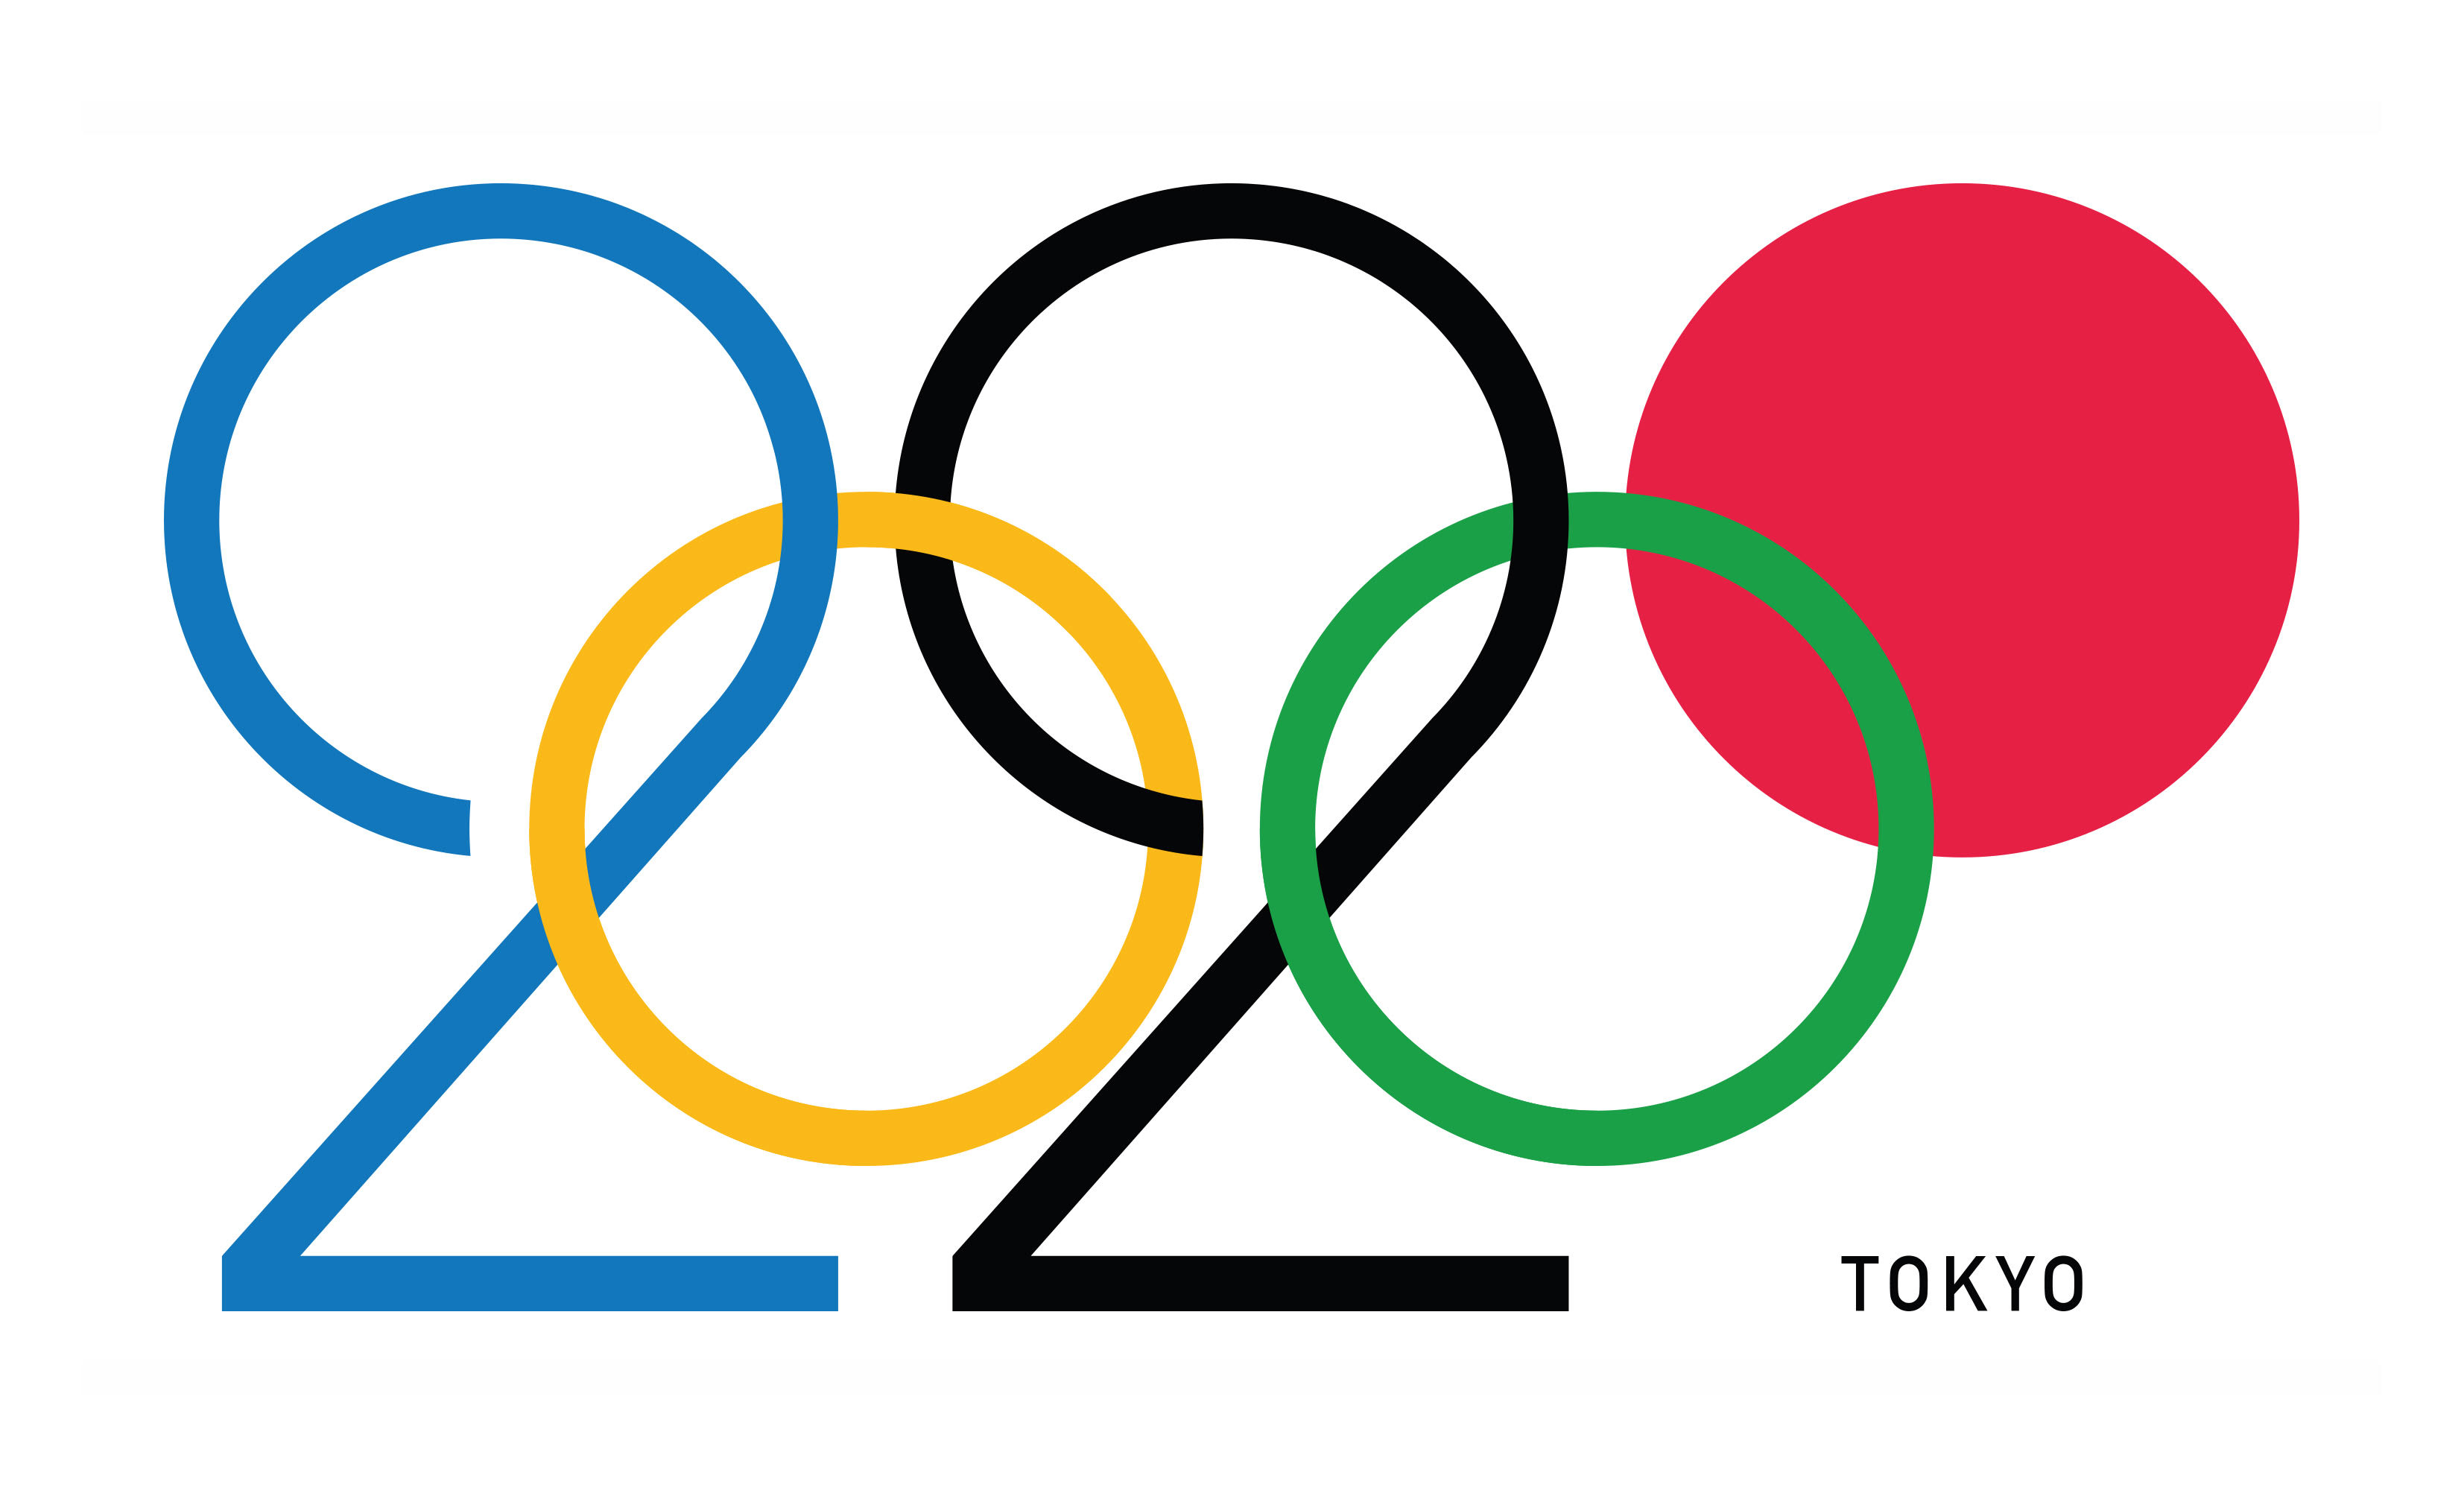 Best Drawing Tablet 2020 Is this Tokyo 2020 logo better than the official design